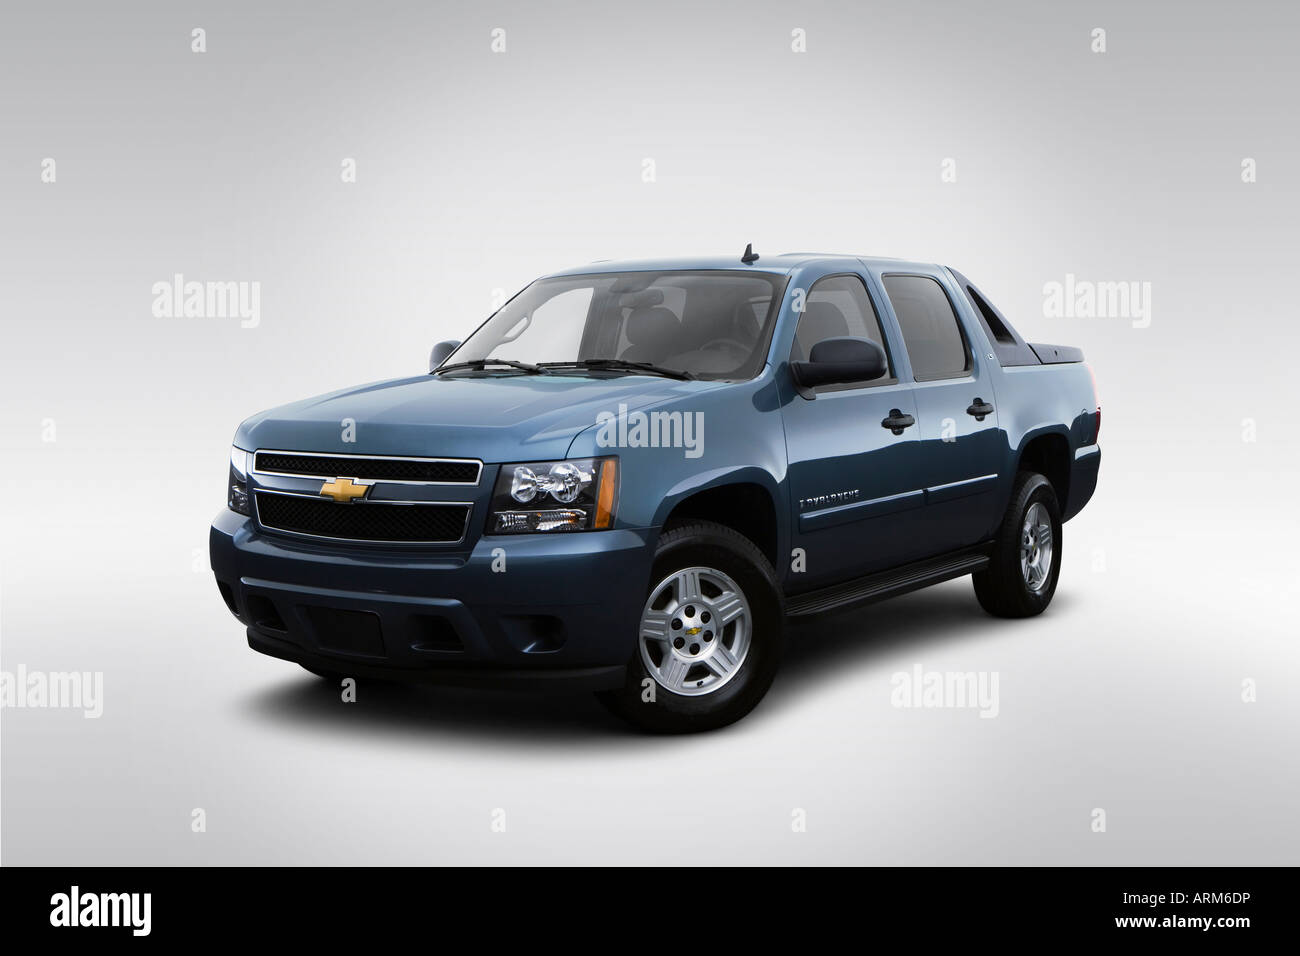 Avalanche 2008 chevrolet avalanche : 2008 Chevrolet Avalanche LS in Blue - Front angle view Stock Photo ...